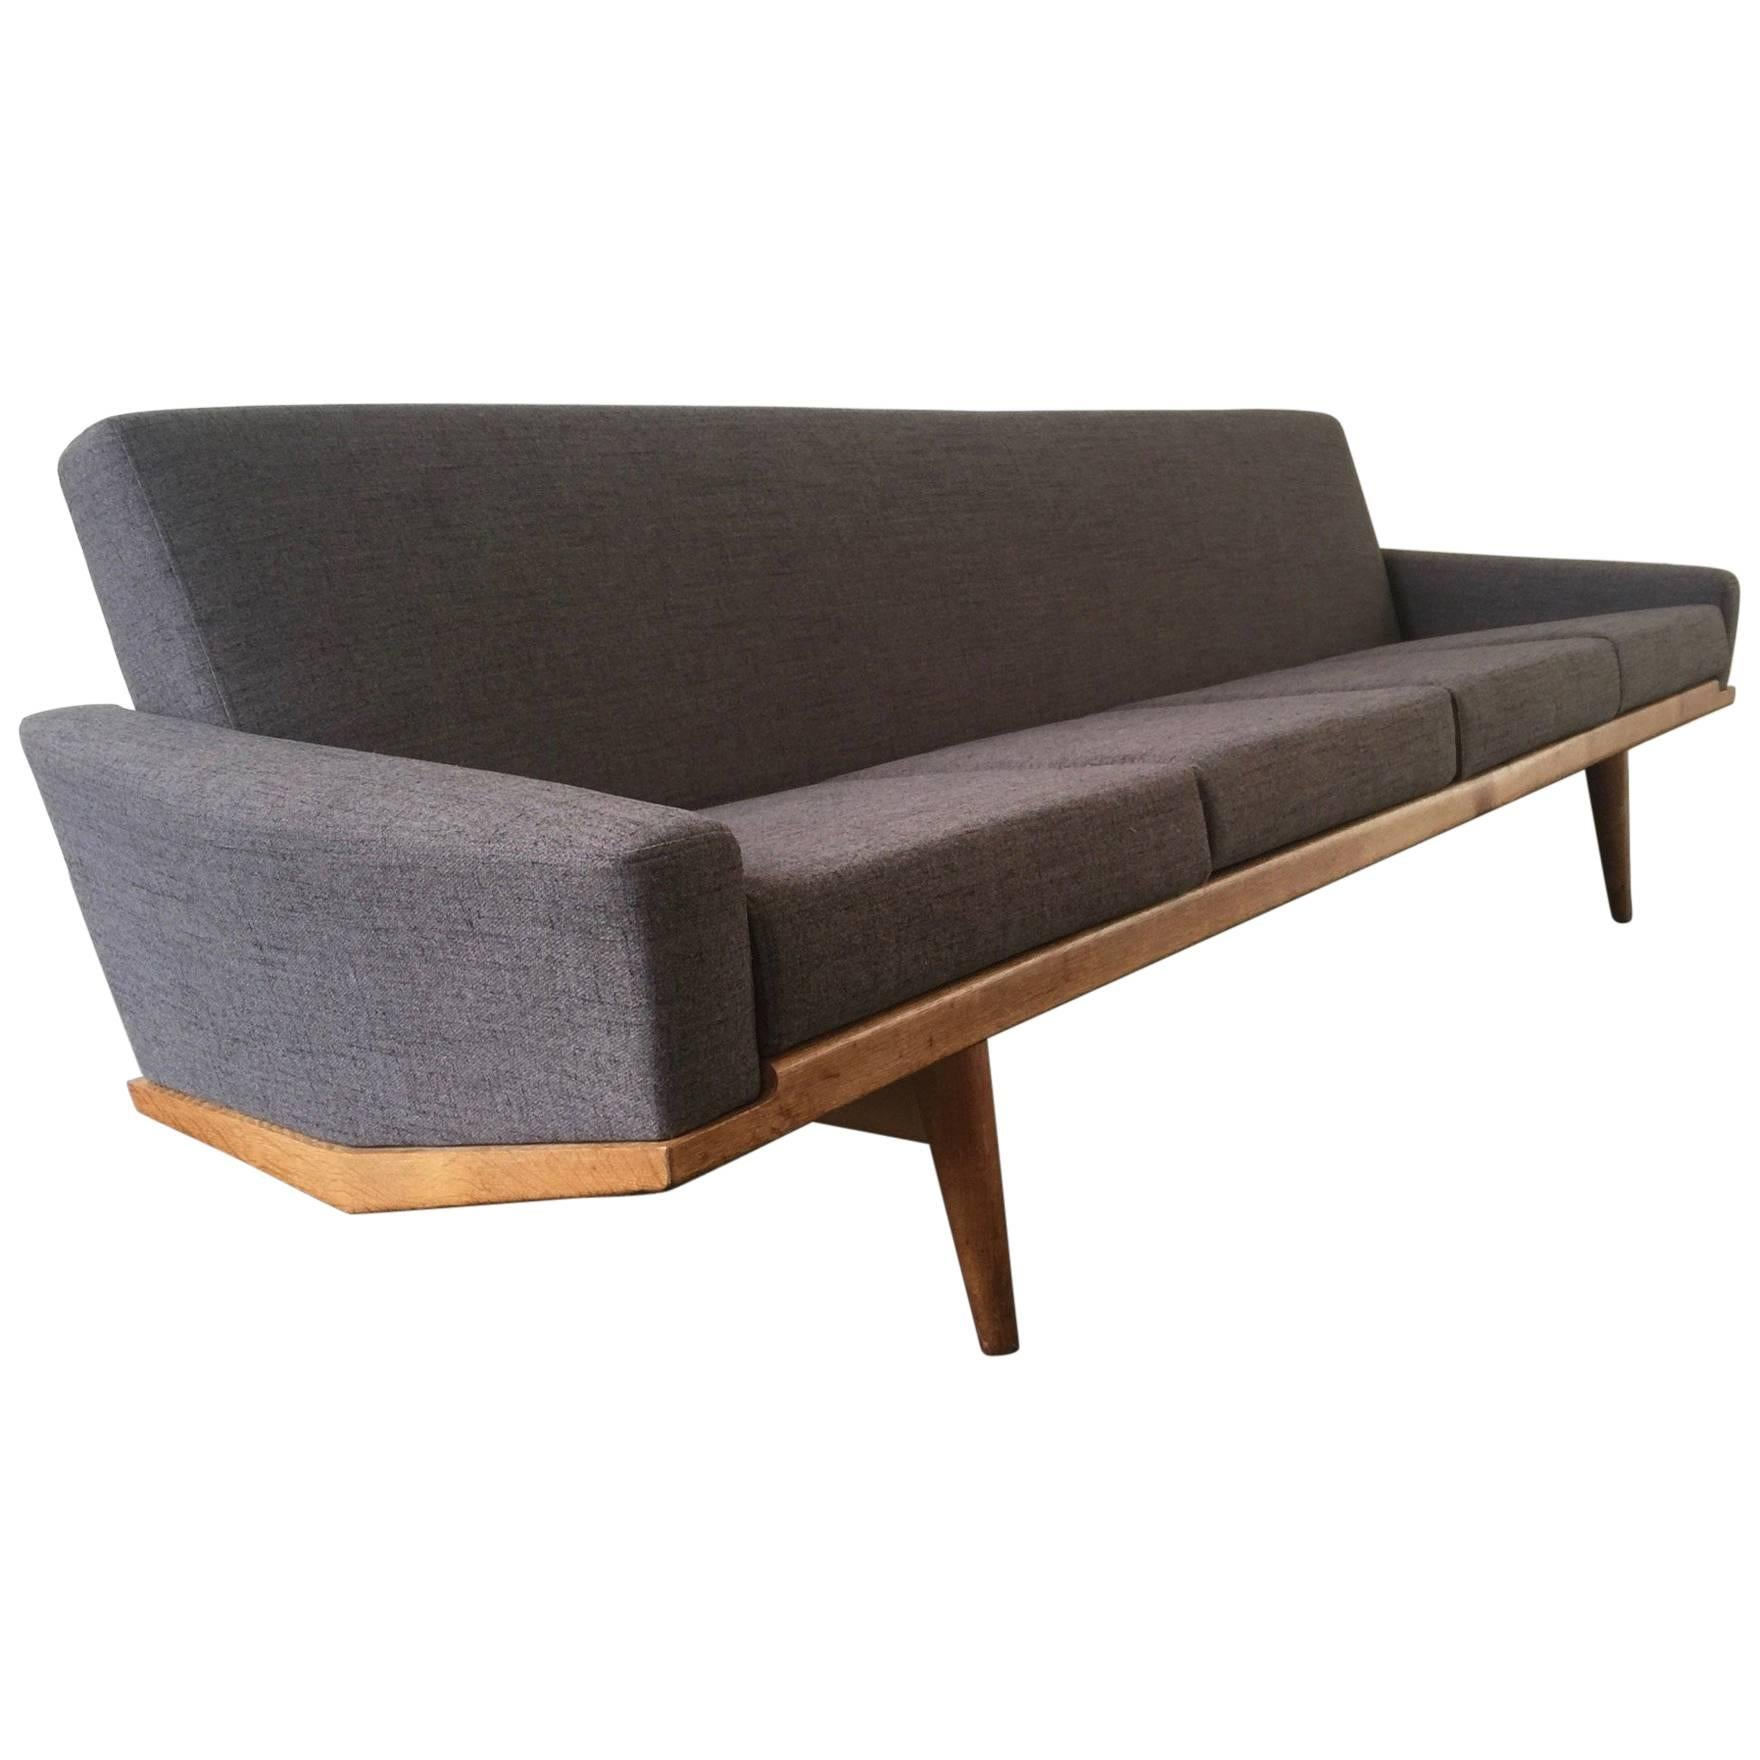 Beautiful 221 Sofa By H. W. Klein, Professional Re Upholstered Home Design Ideas